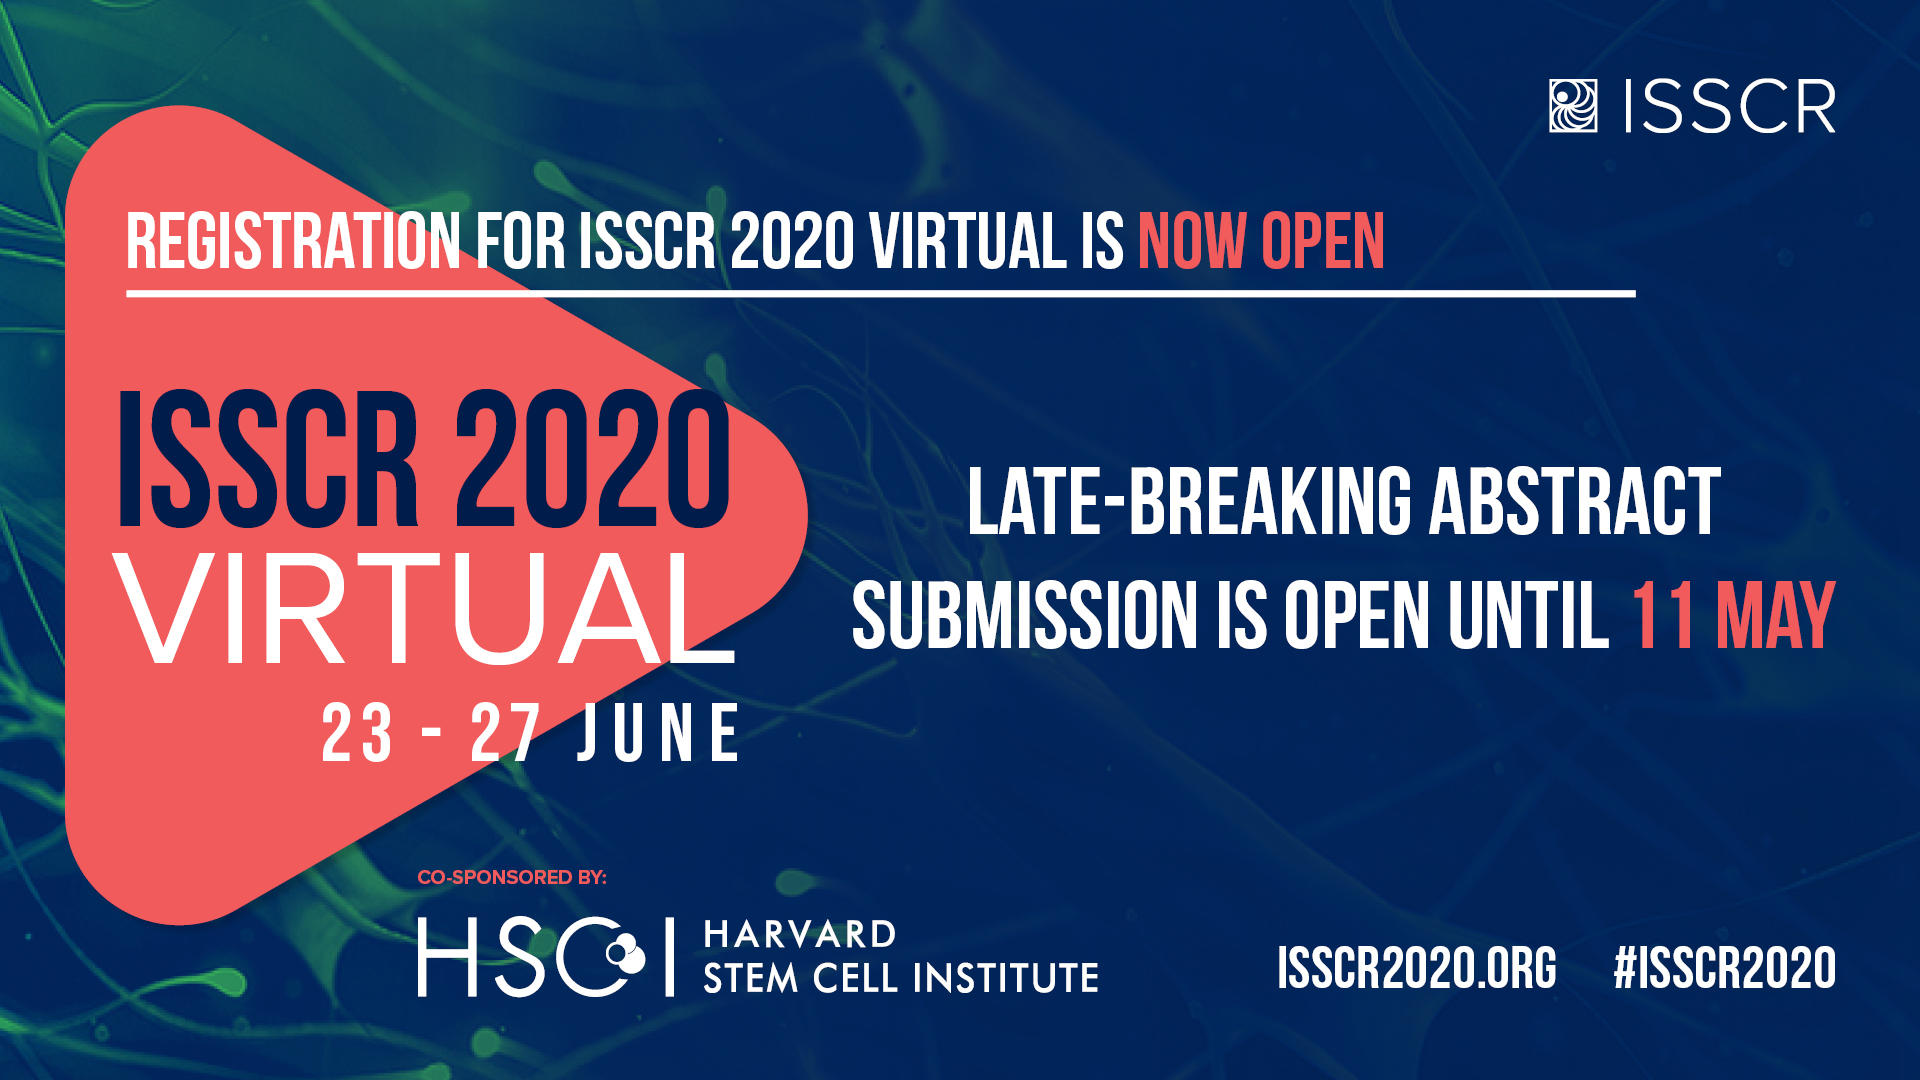 ISSCR flyer image